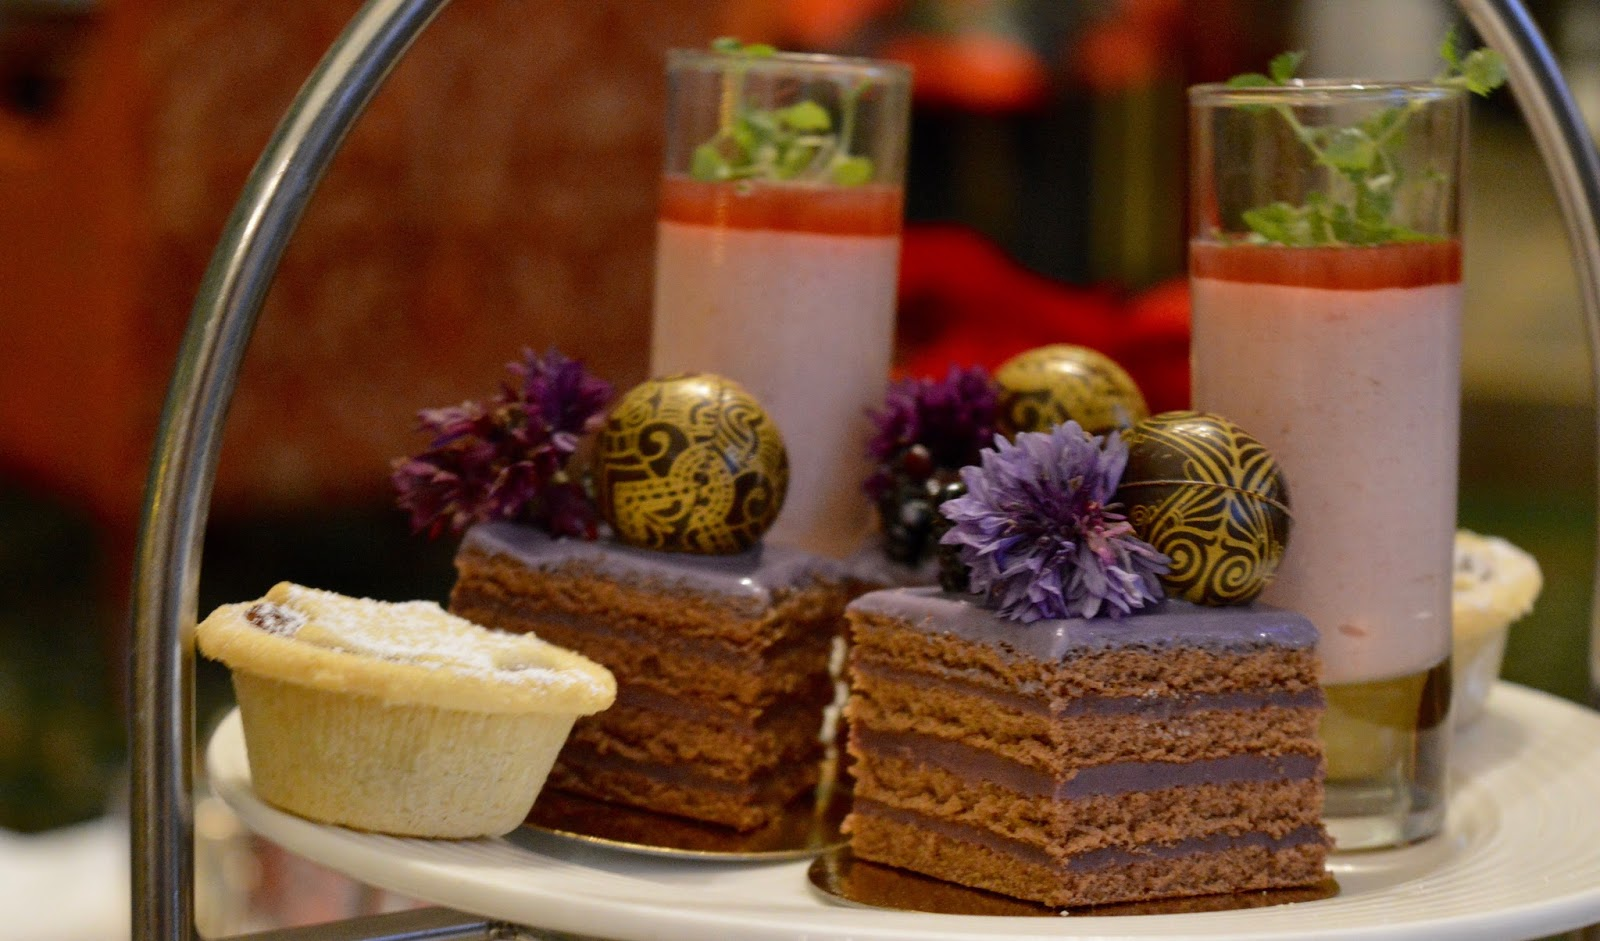 Afternoon tea at Wynyard Hall (with kids) - A Review - chocolate cake and mince pie